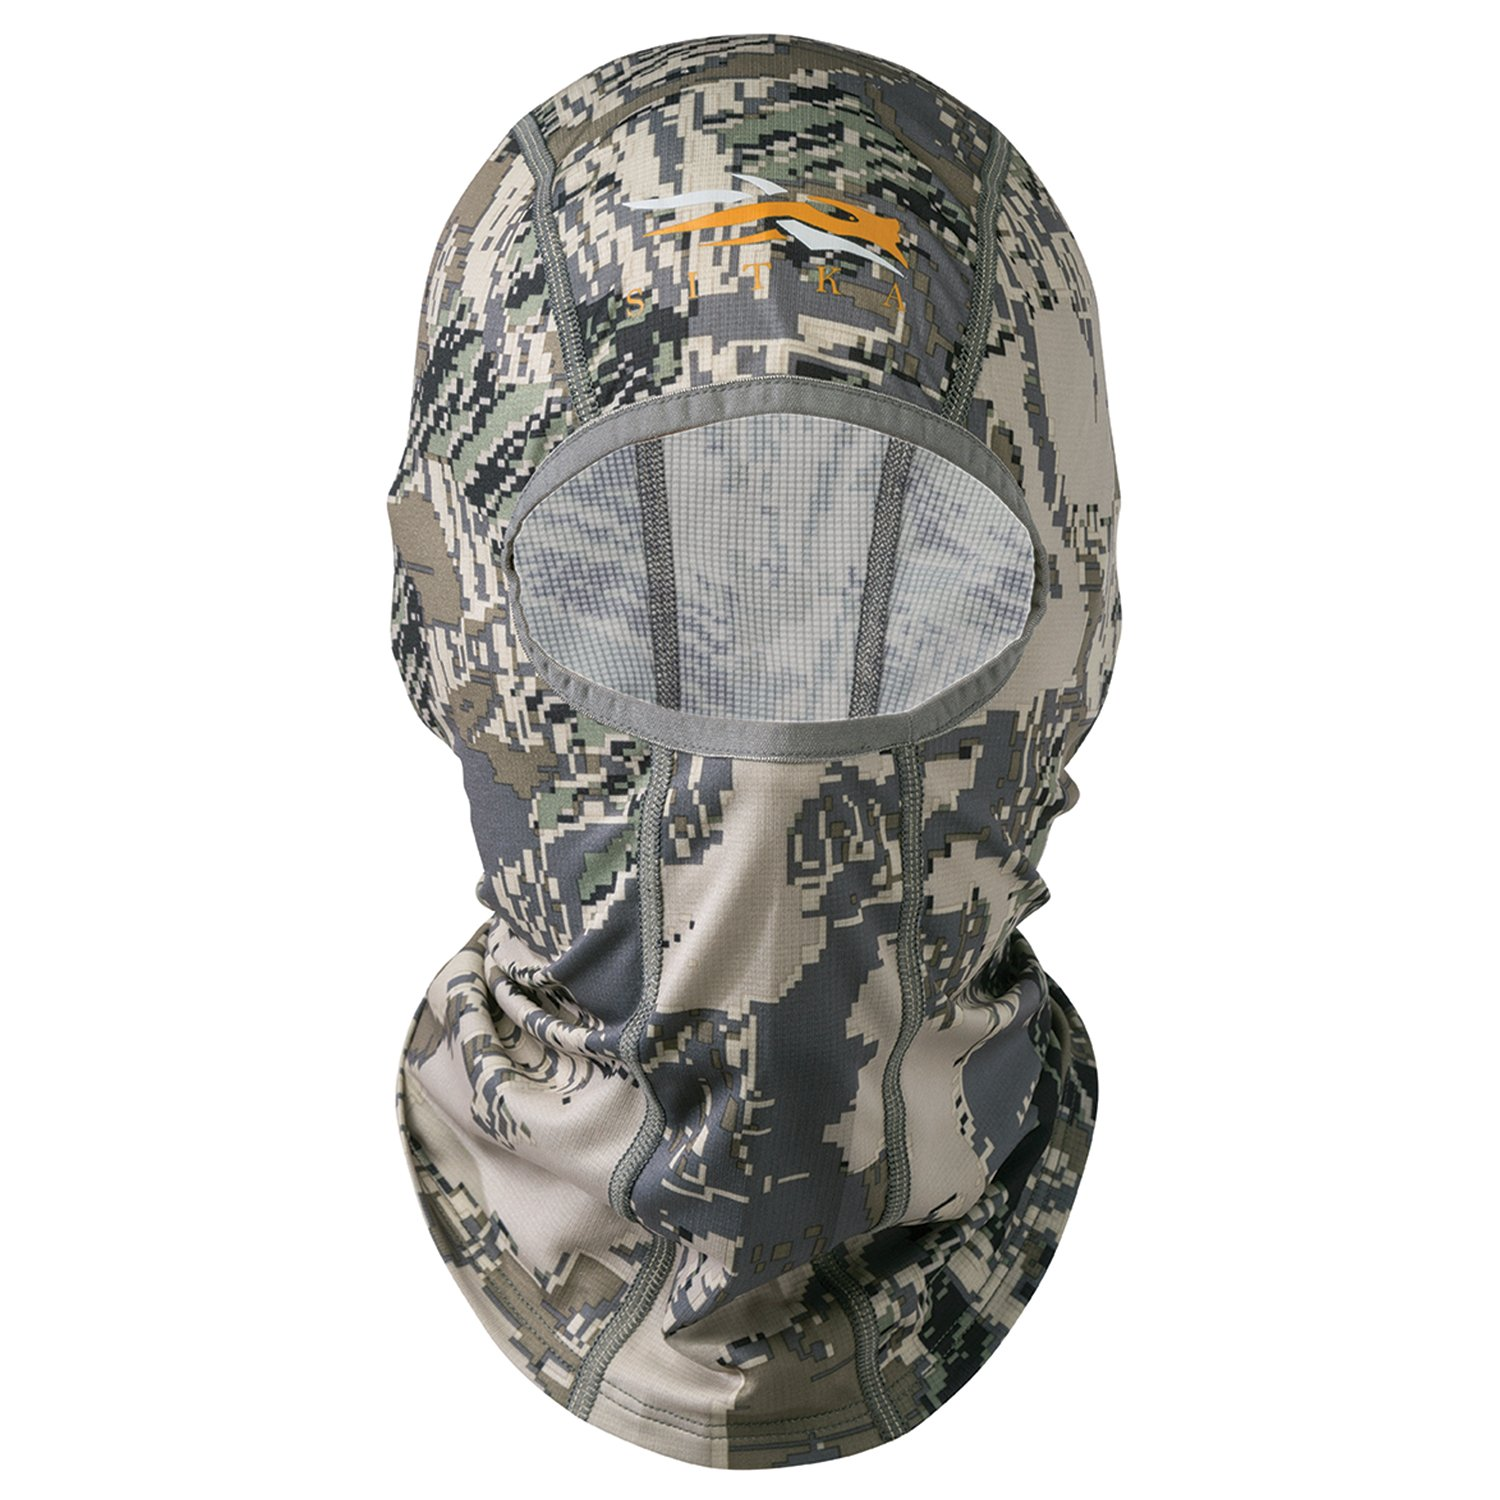 SITKA Gear Lightweight Balaclava Optifade Open Country One Size Fits All - Discontinued by SITKA (Image #1)